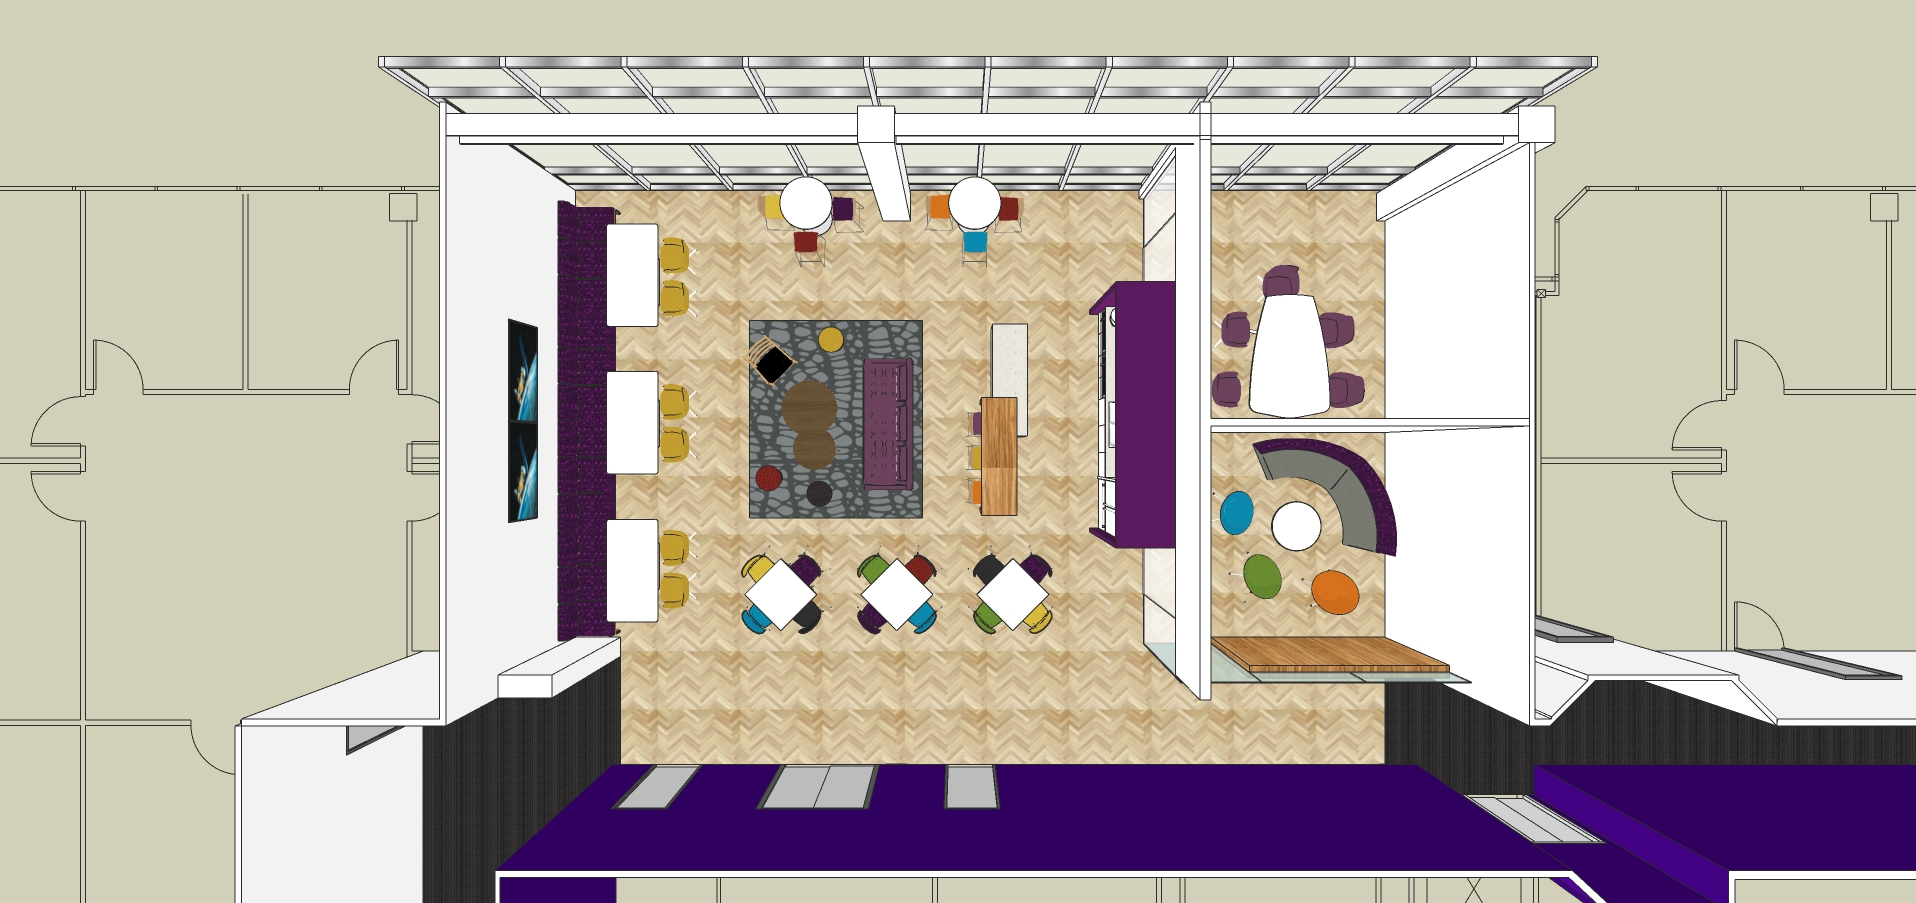 D8 Break Room_option C_plan view.jpg